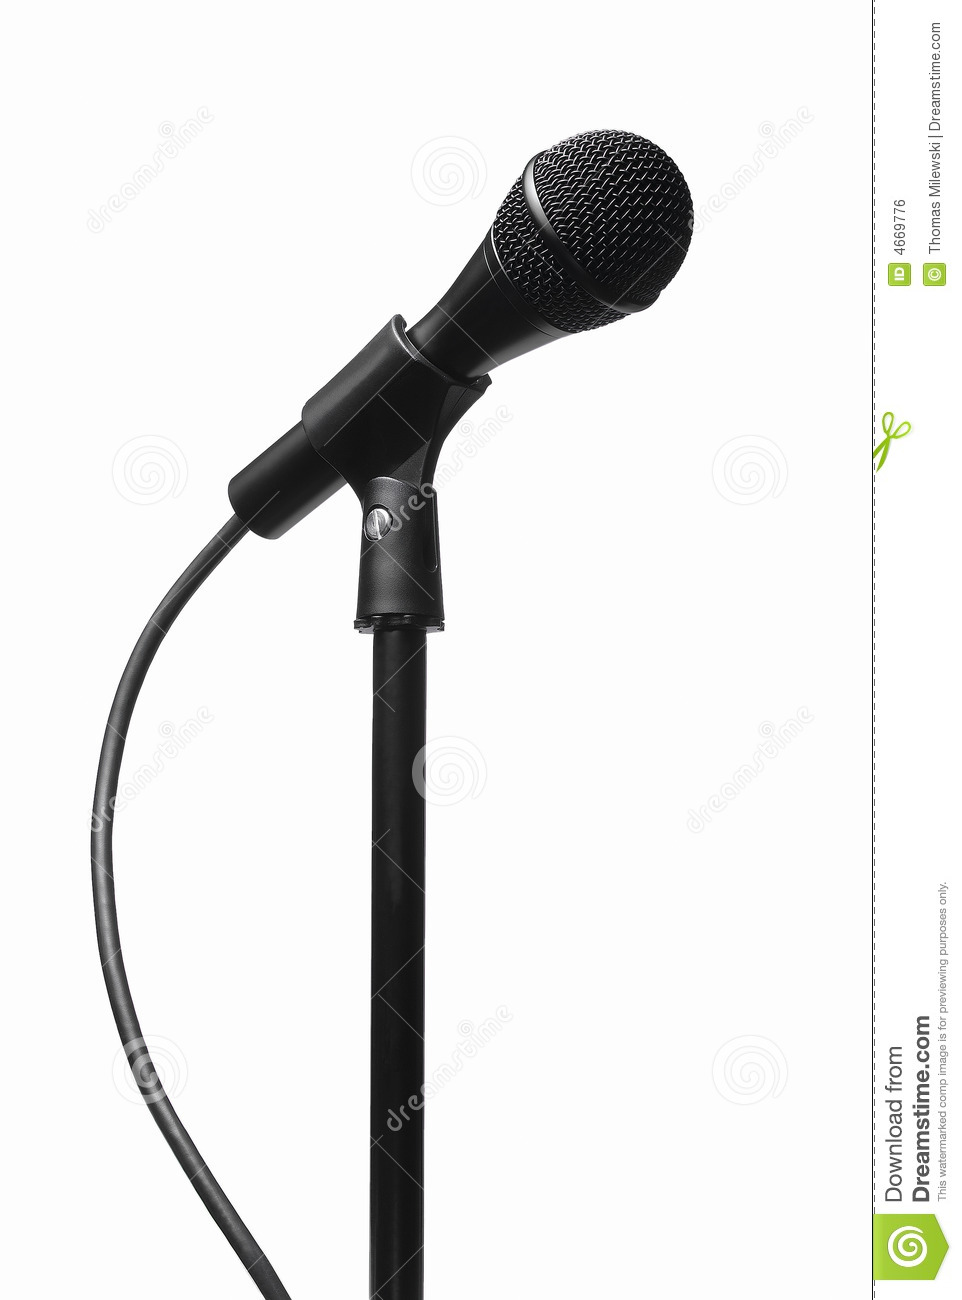 classic black microphone on stand royalty free stock image